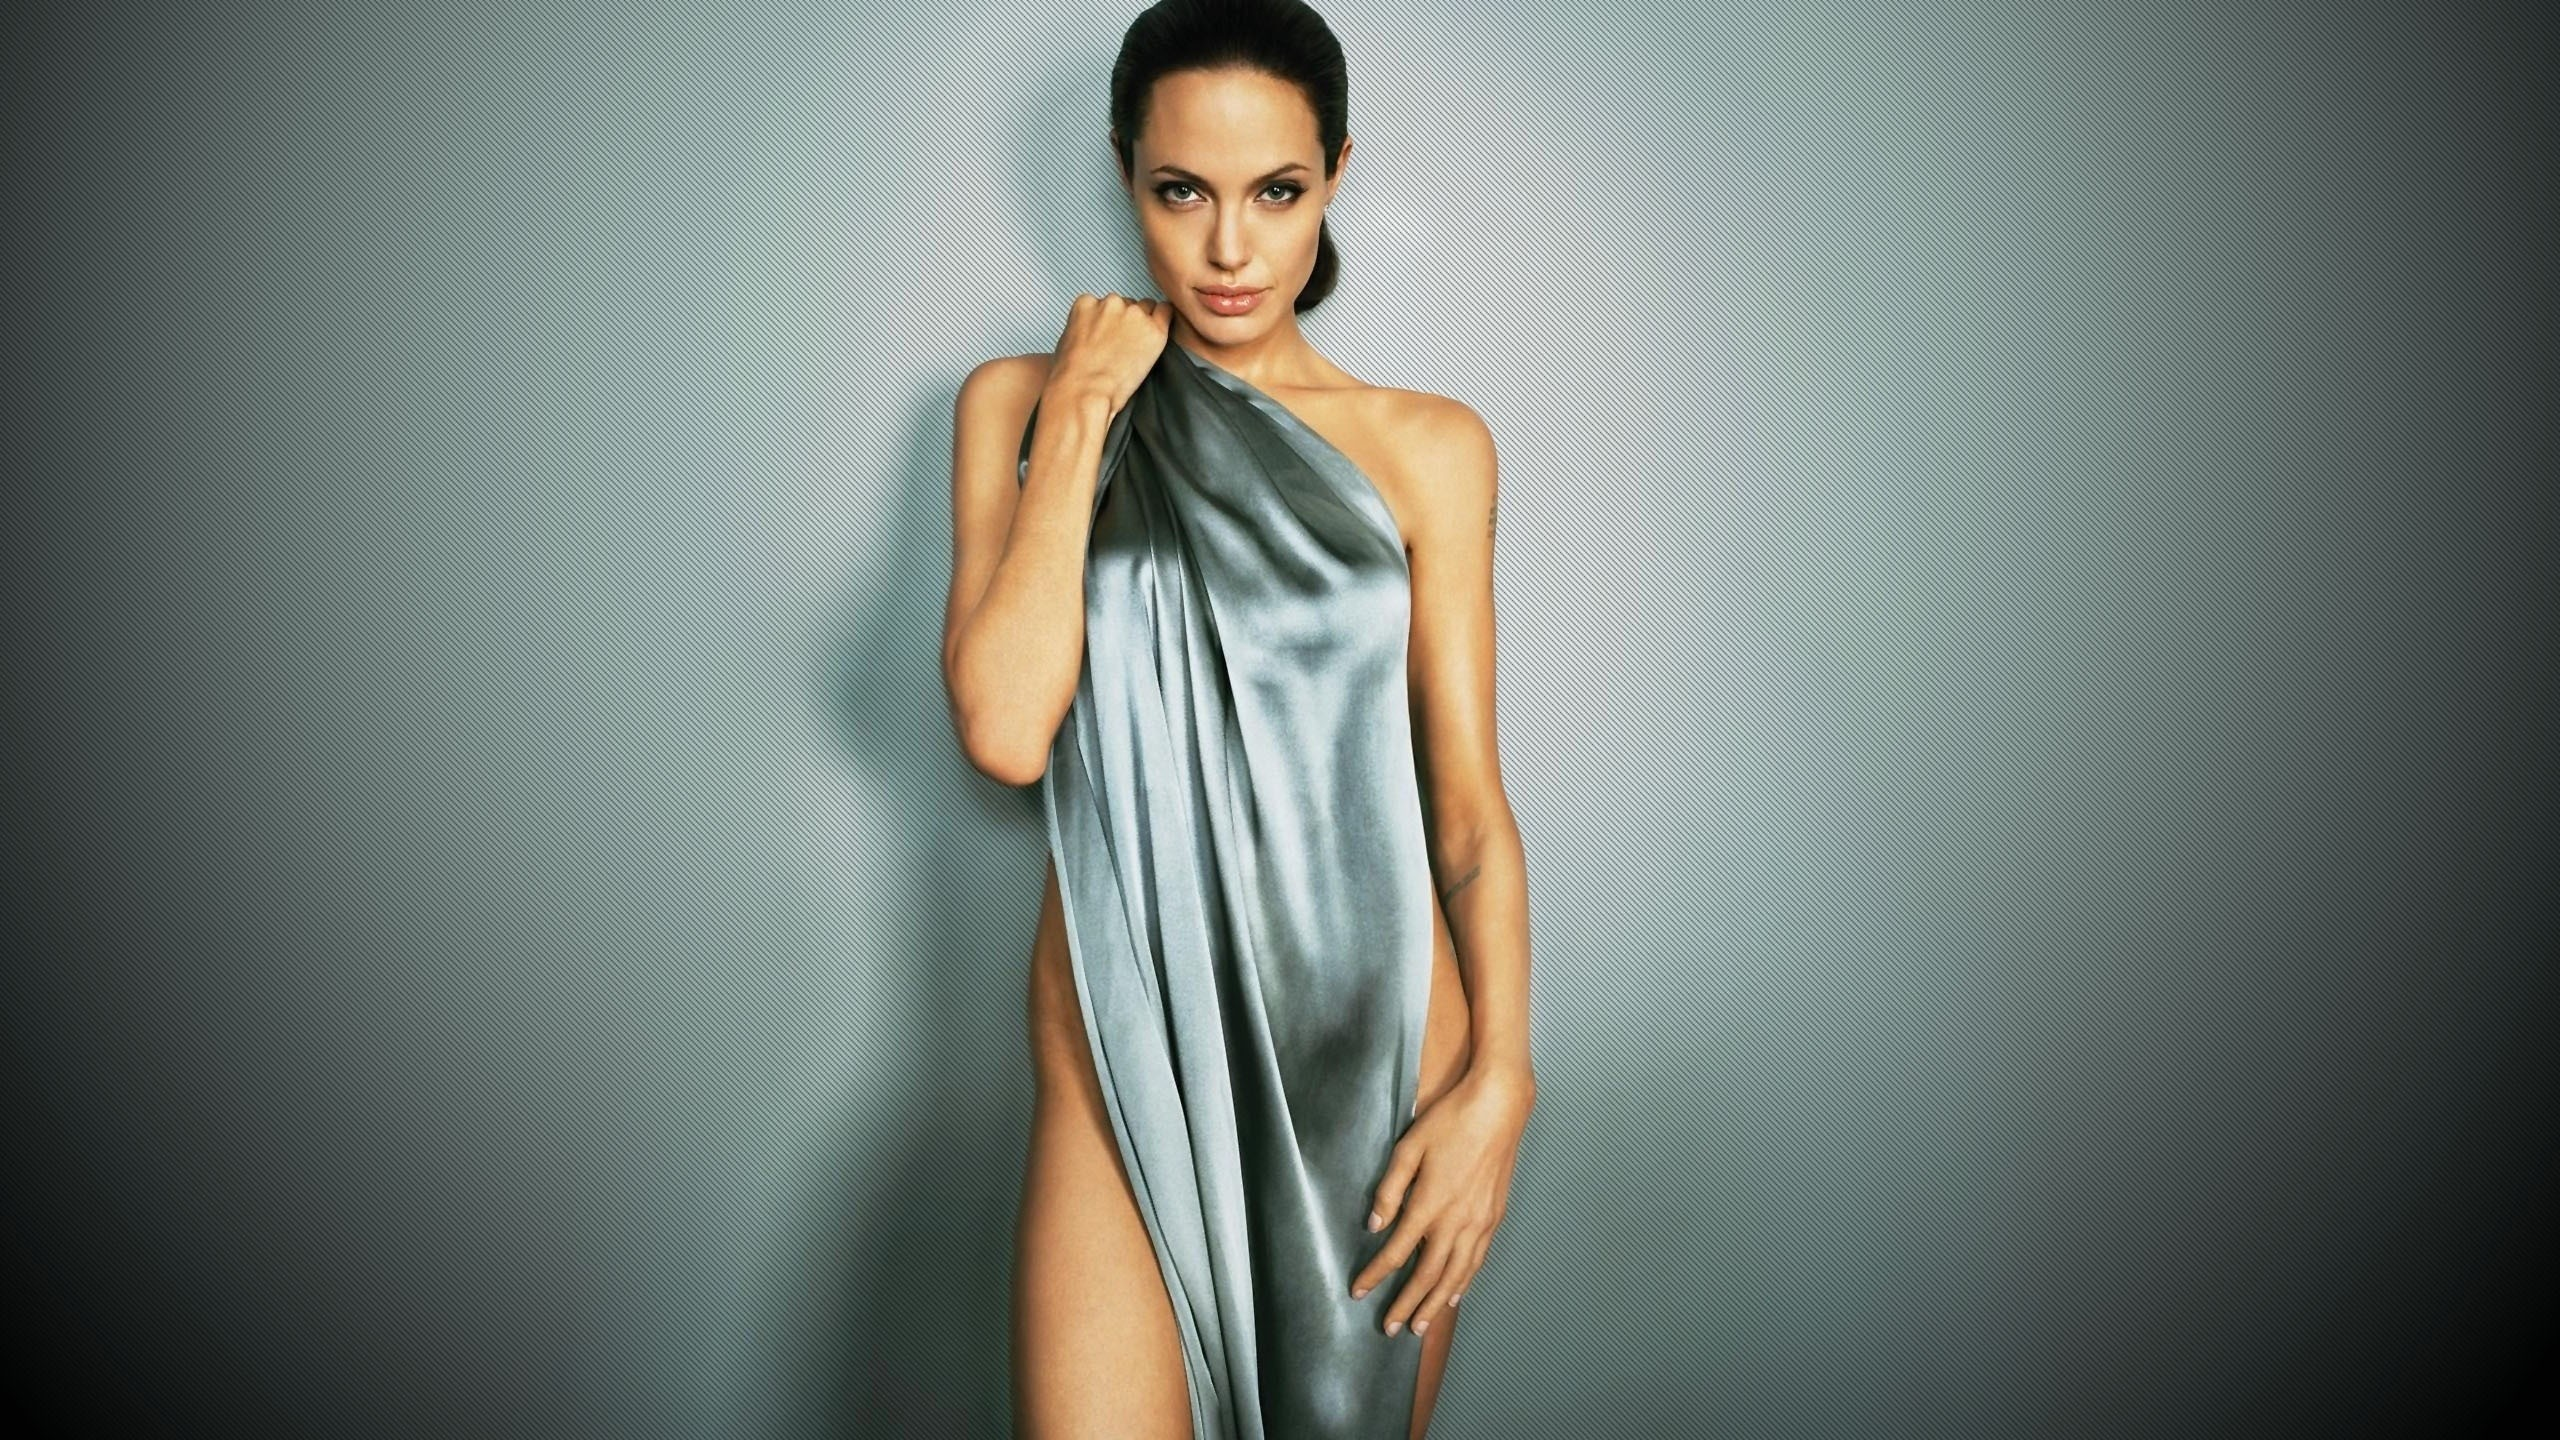 Angelina jolie naked wallpaper — pic 13